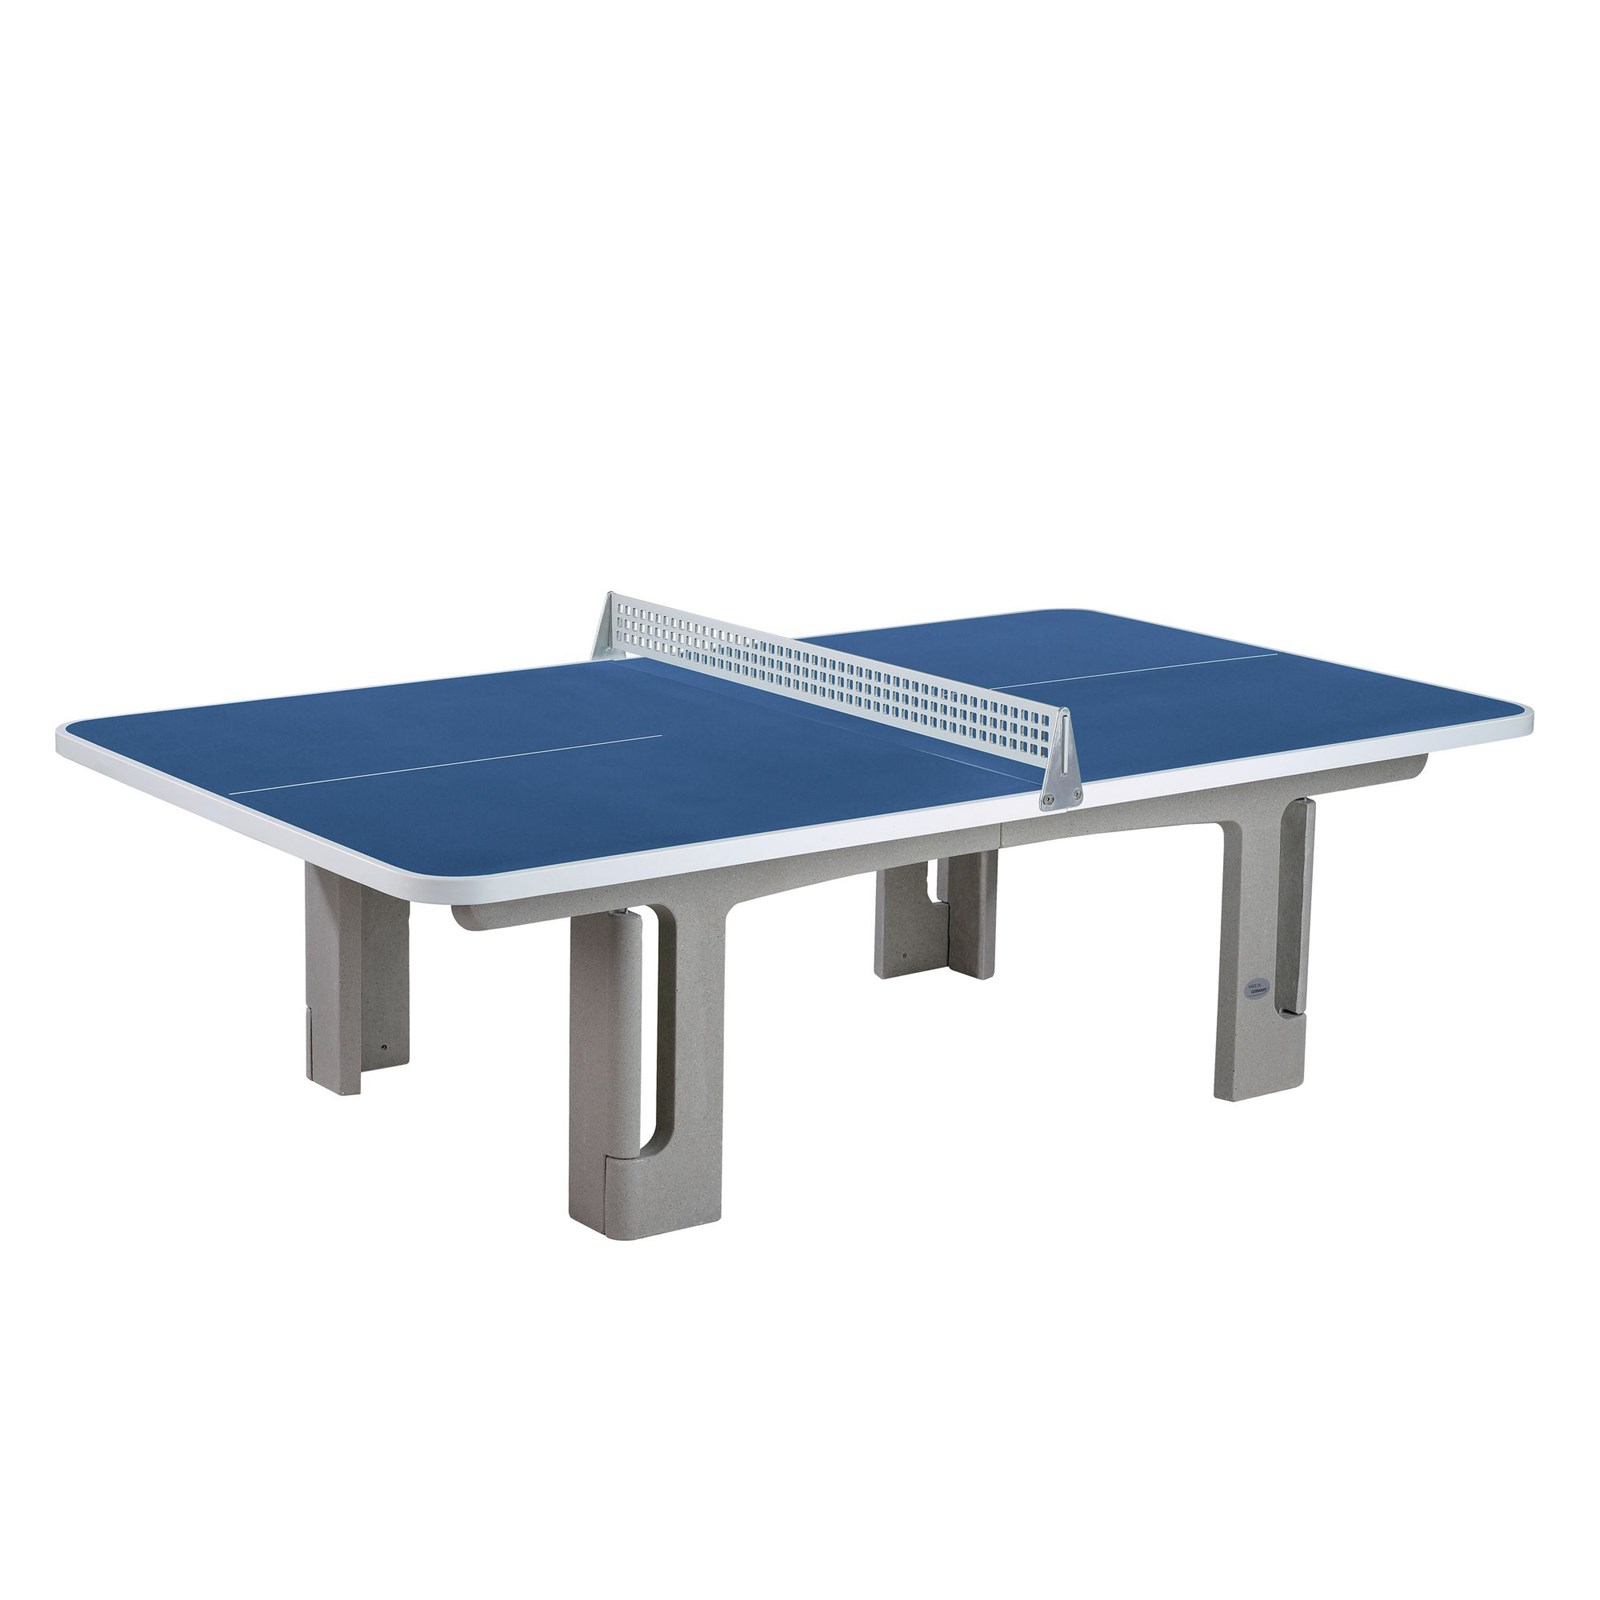 bats ping pong butterfly balls indoor index and rollaway spirit including tennis includes set rev blue net post table